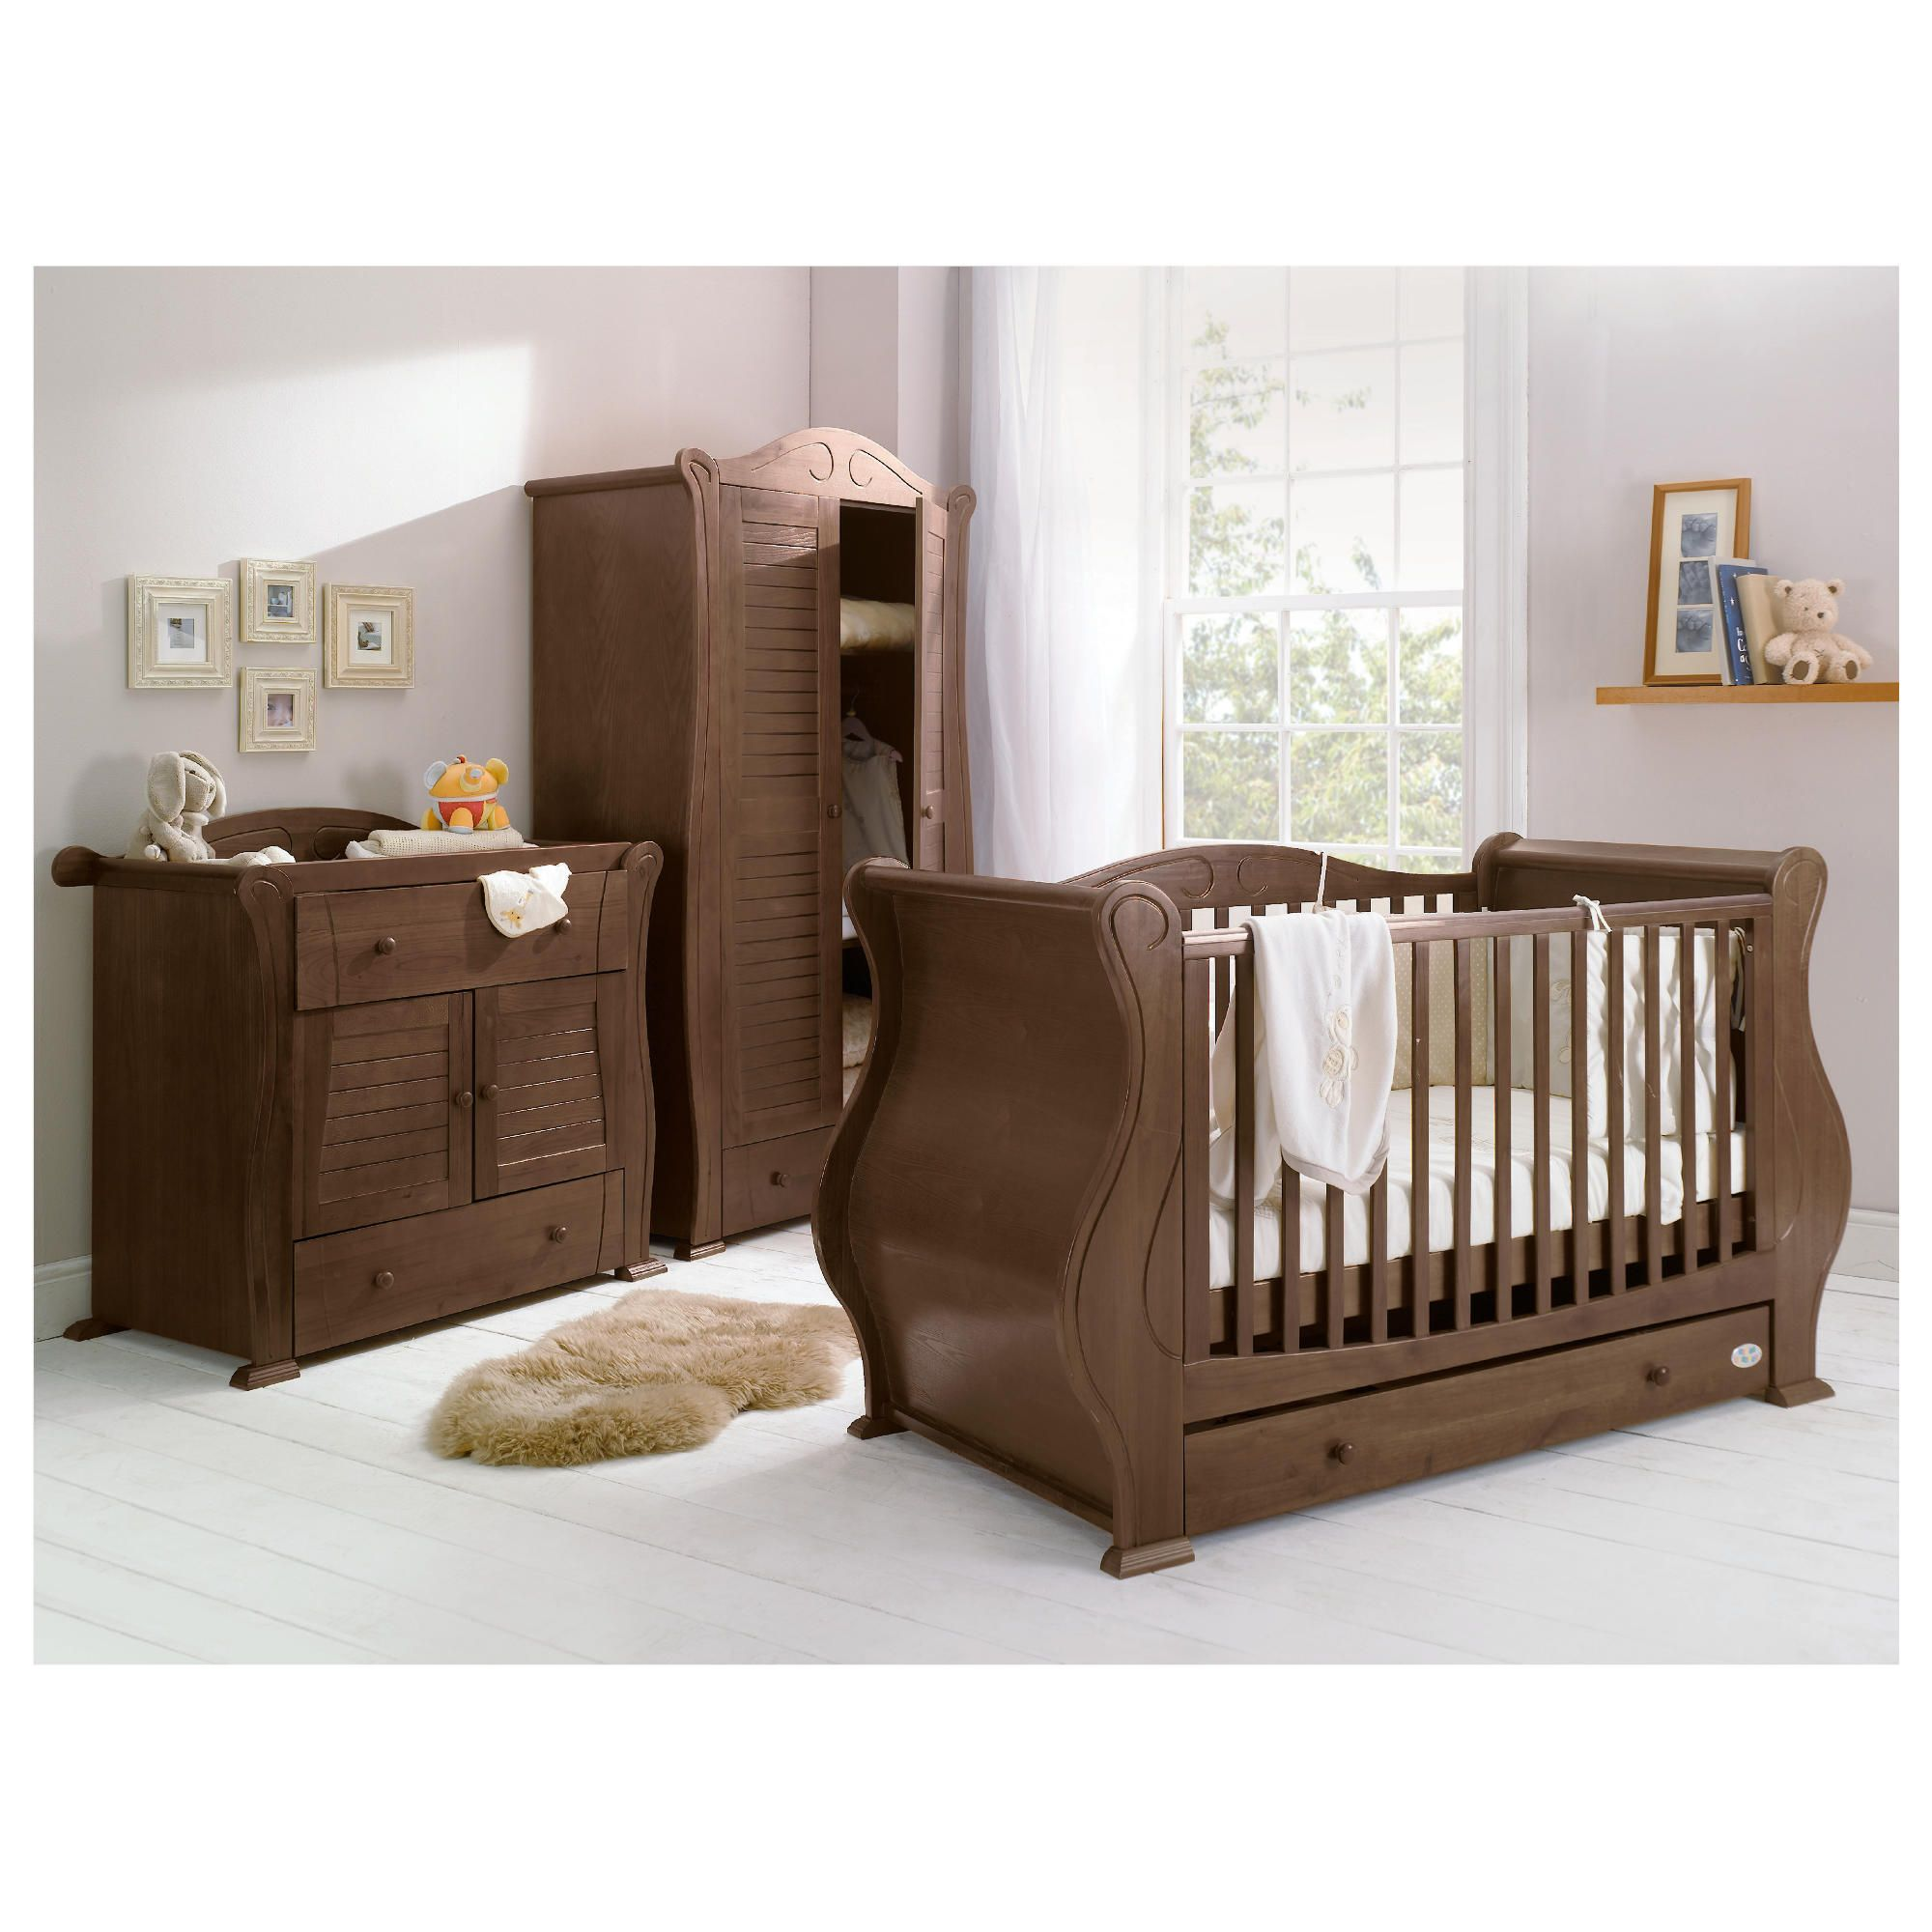 Tutti Bambini Marie 3 Piece Sleigh Room Set, Walnut with Free Sprung Mattress at Tesco Direct